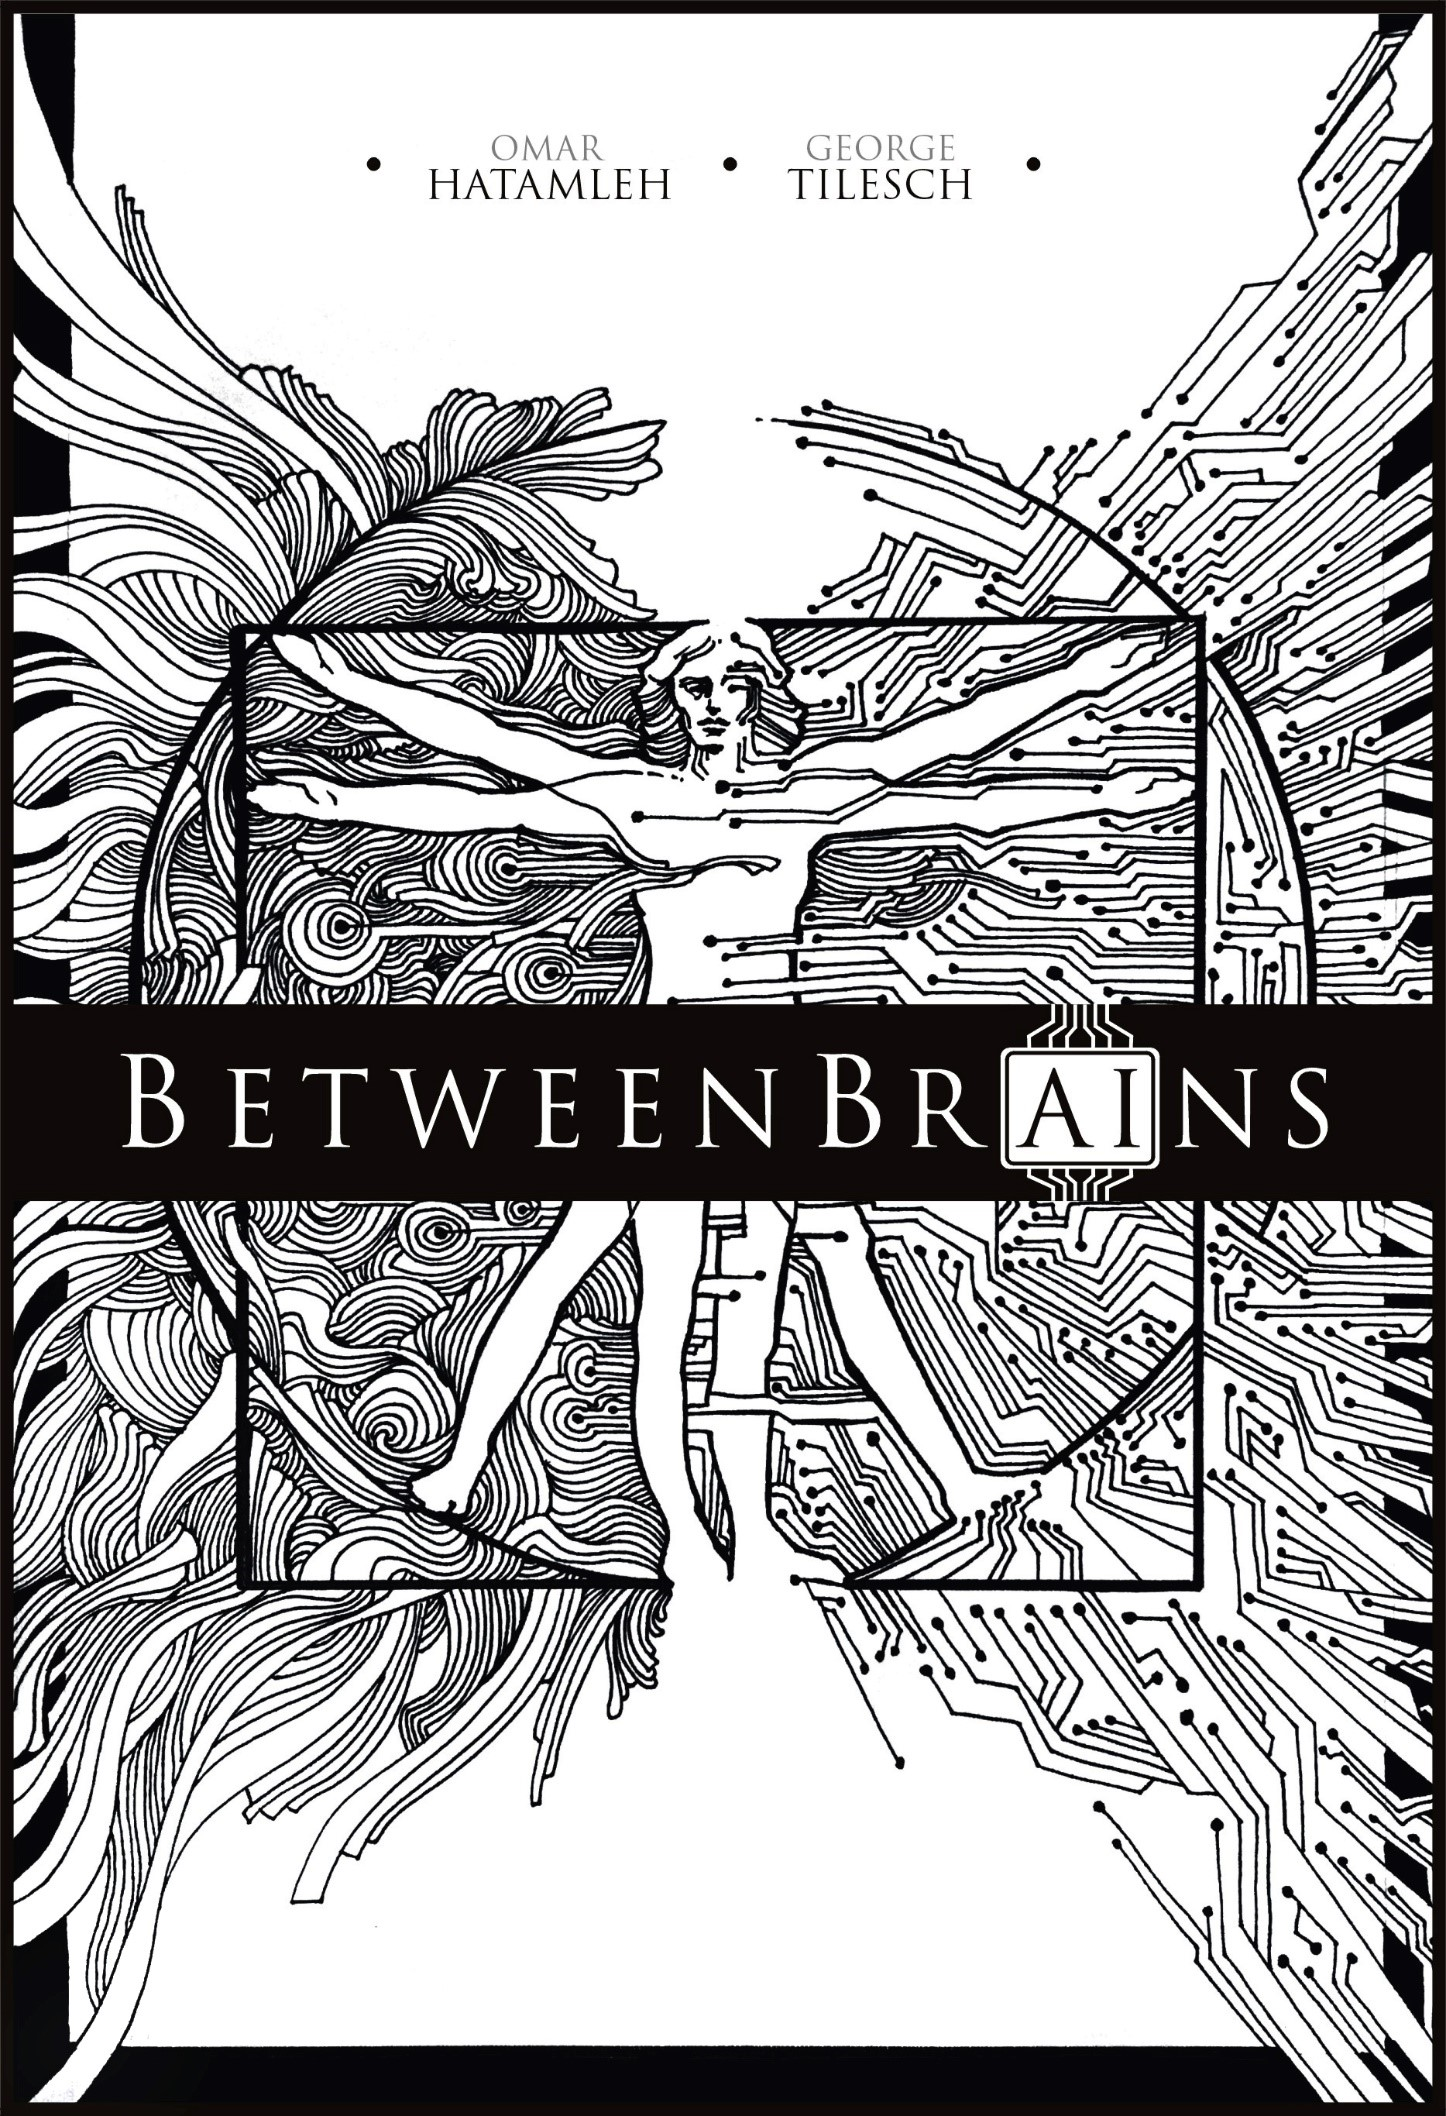 Between Brains